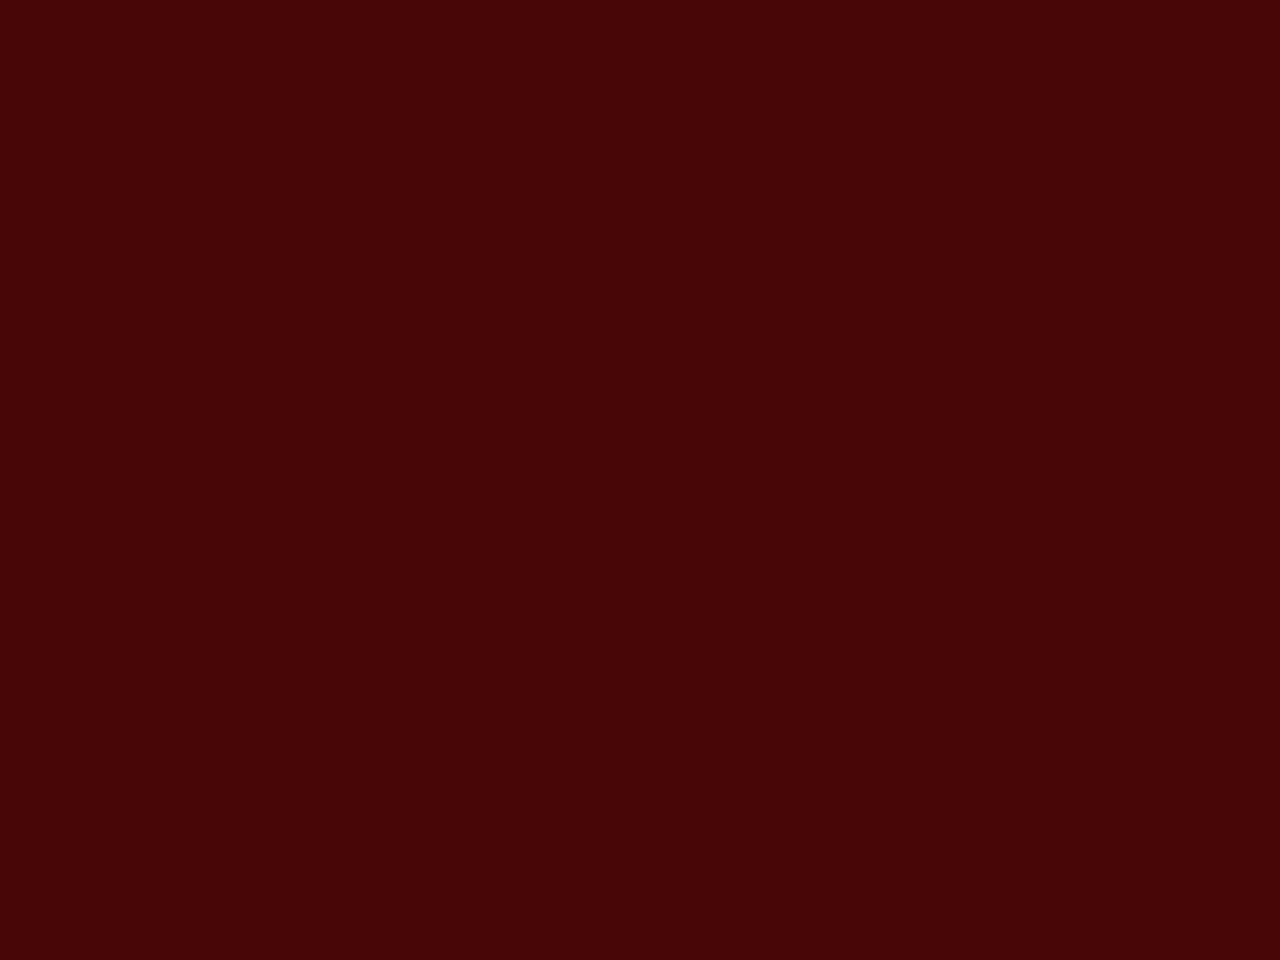 1280x960 Bulgarian Rose Solid Color Background